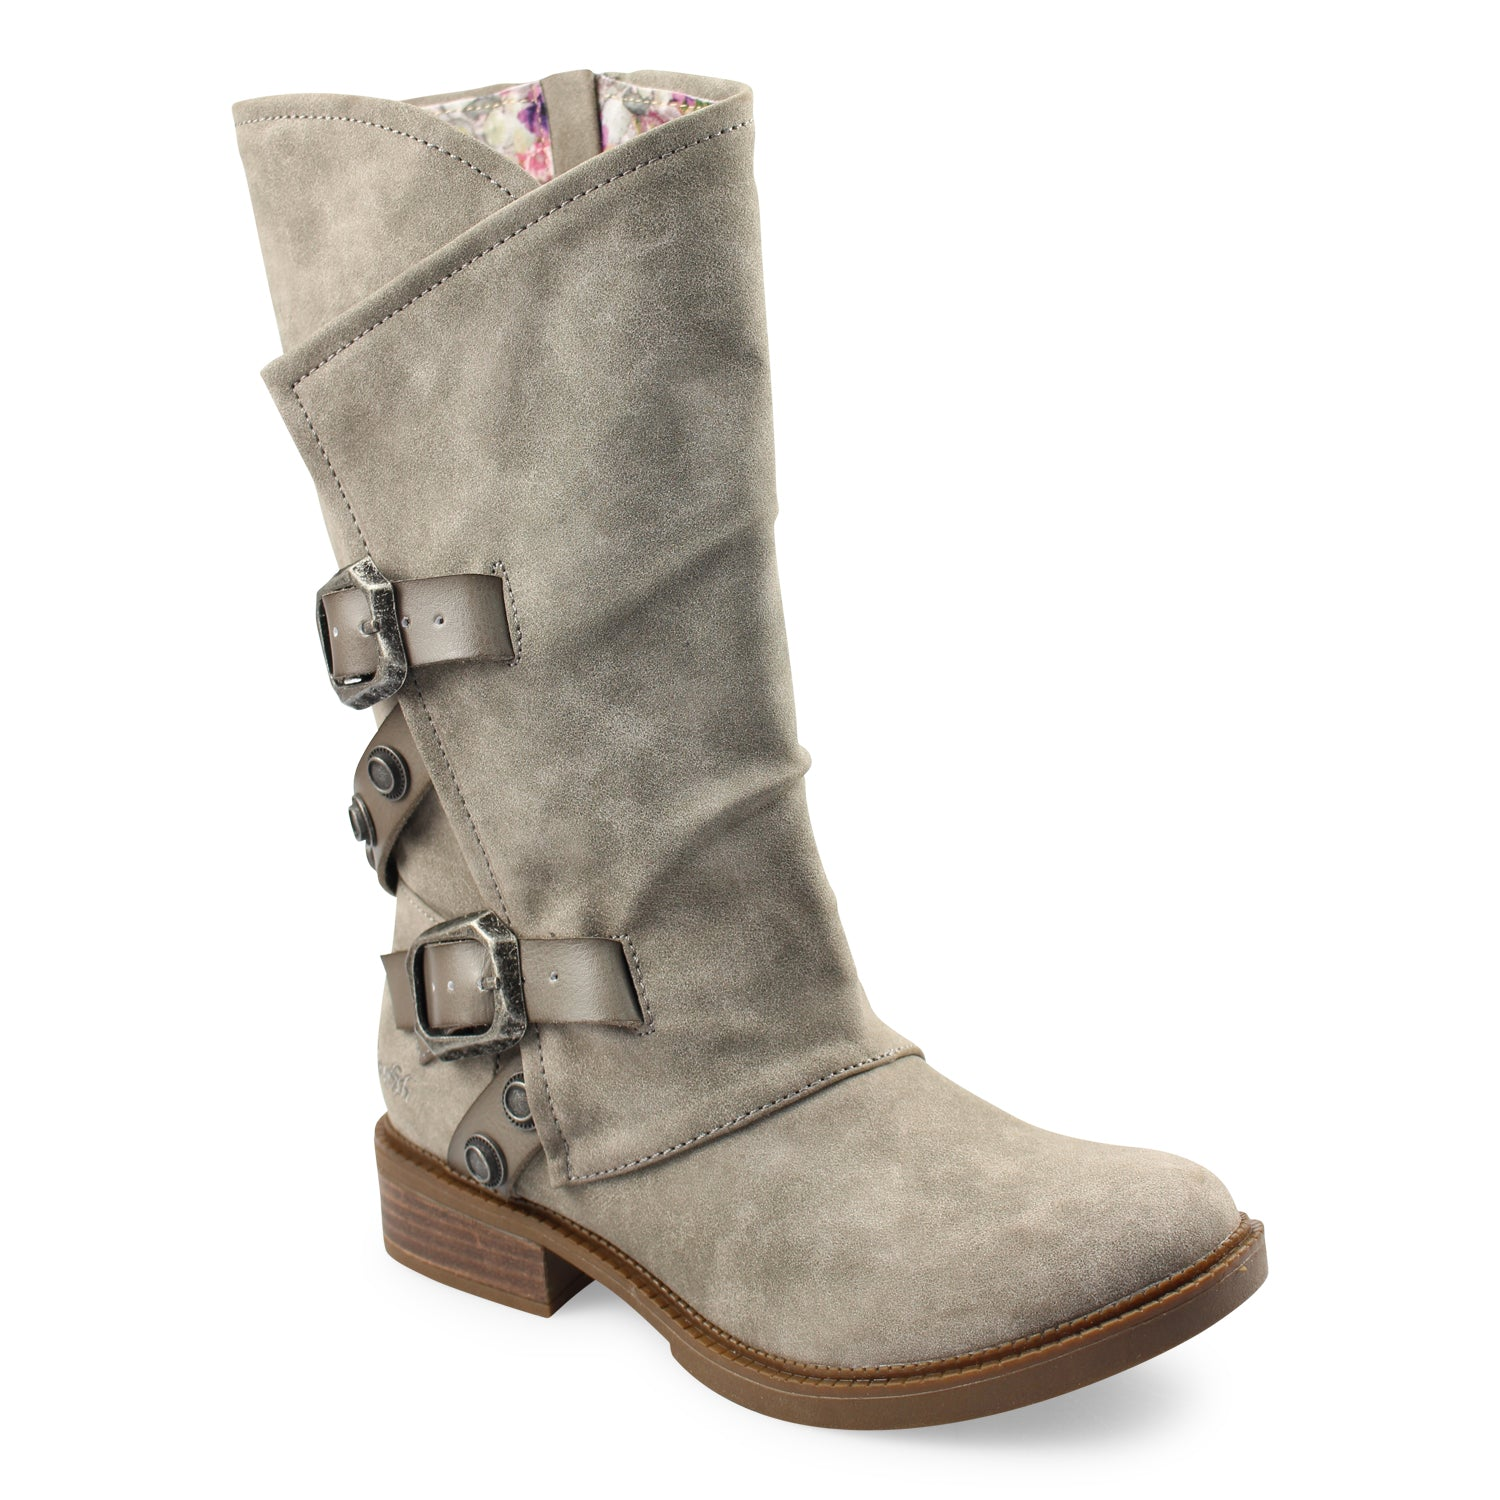 'Blowfish Malibu' 8218 219 - Women's Vacation Mid-calf Boot - Smoke